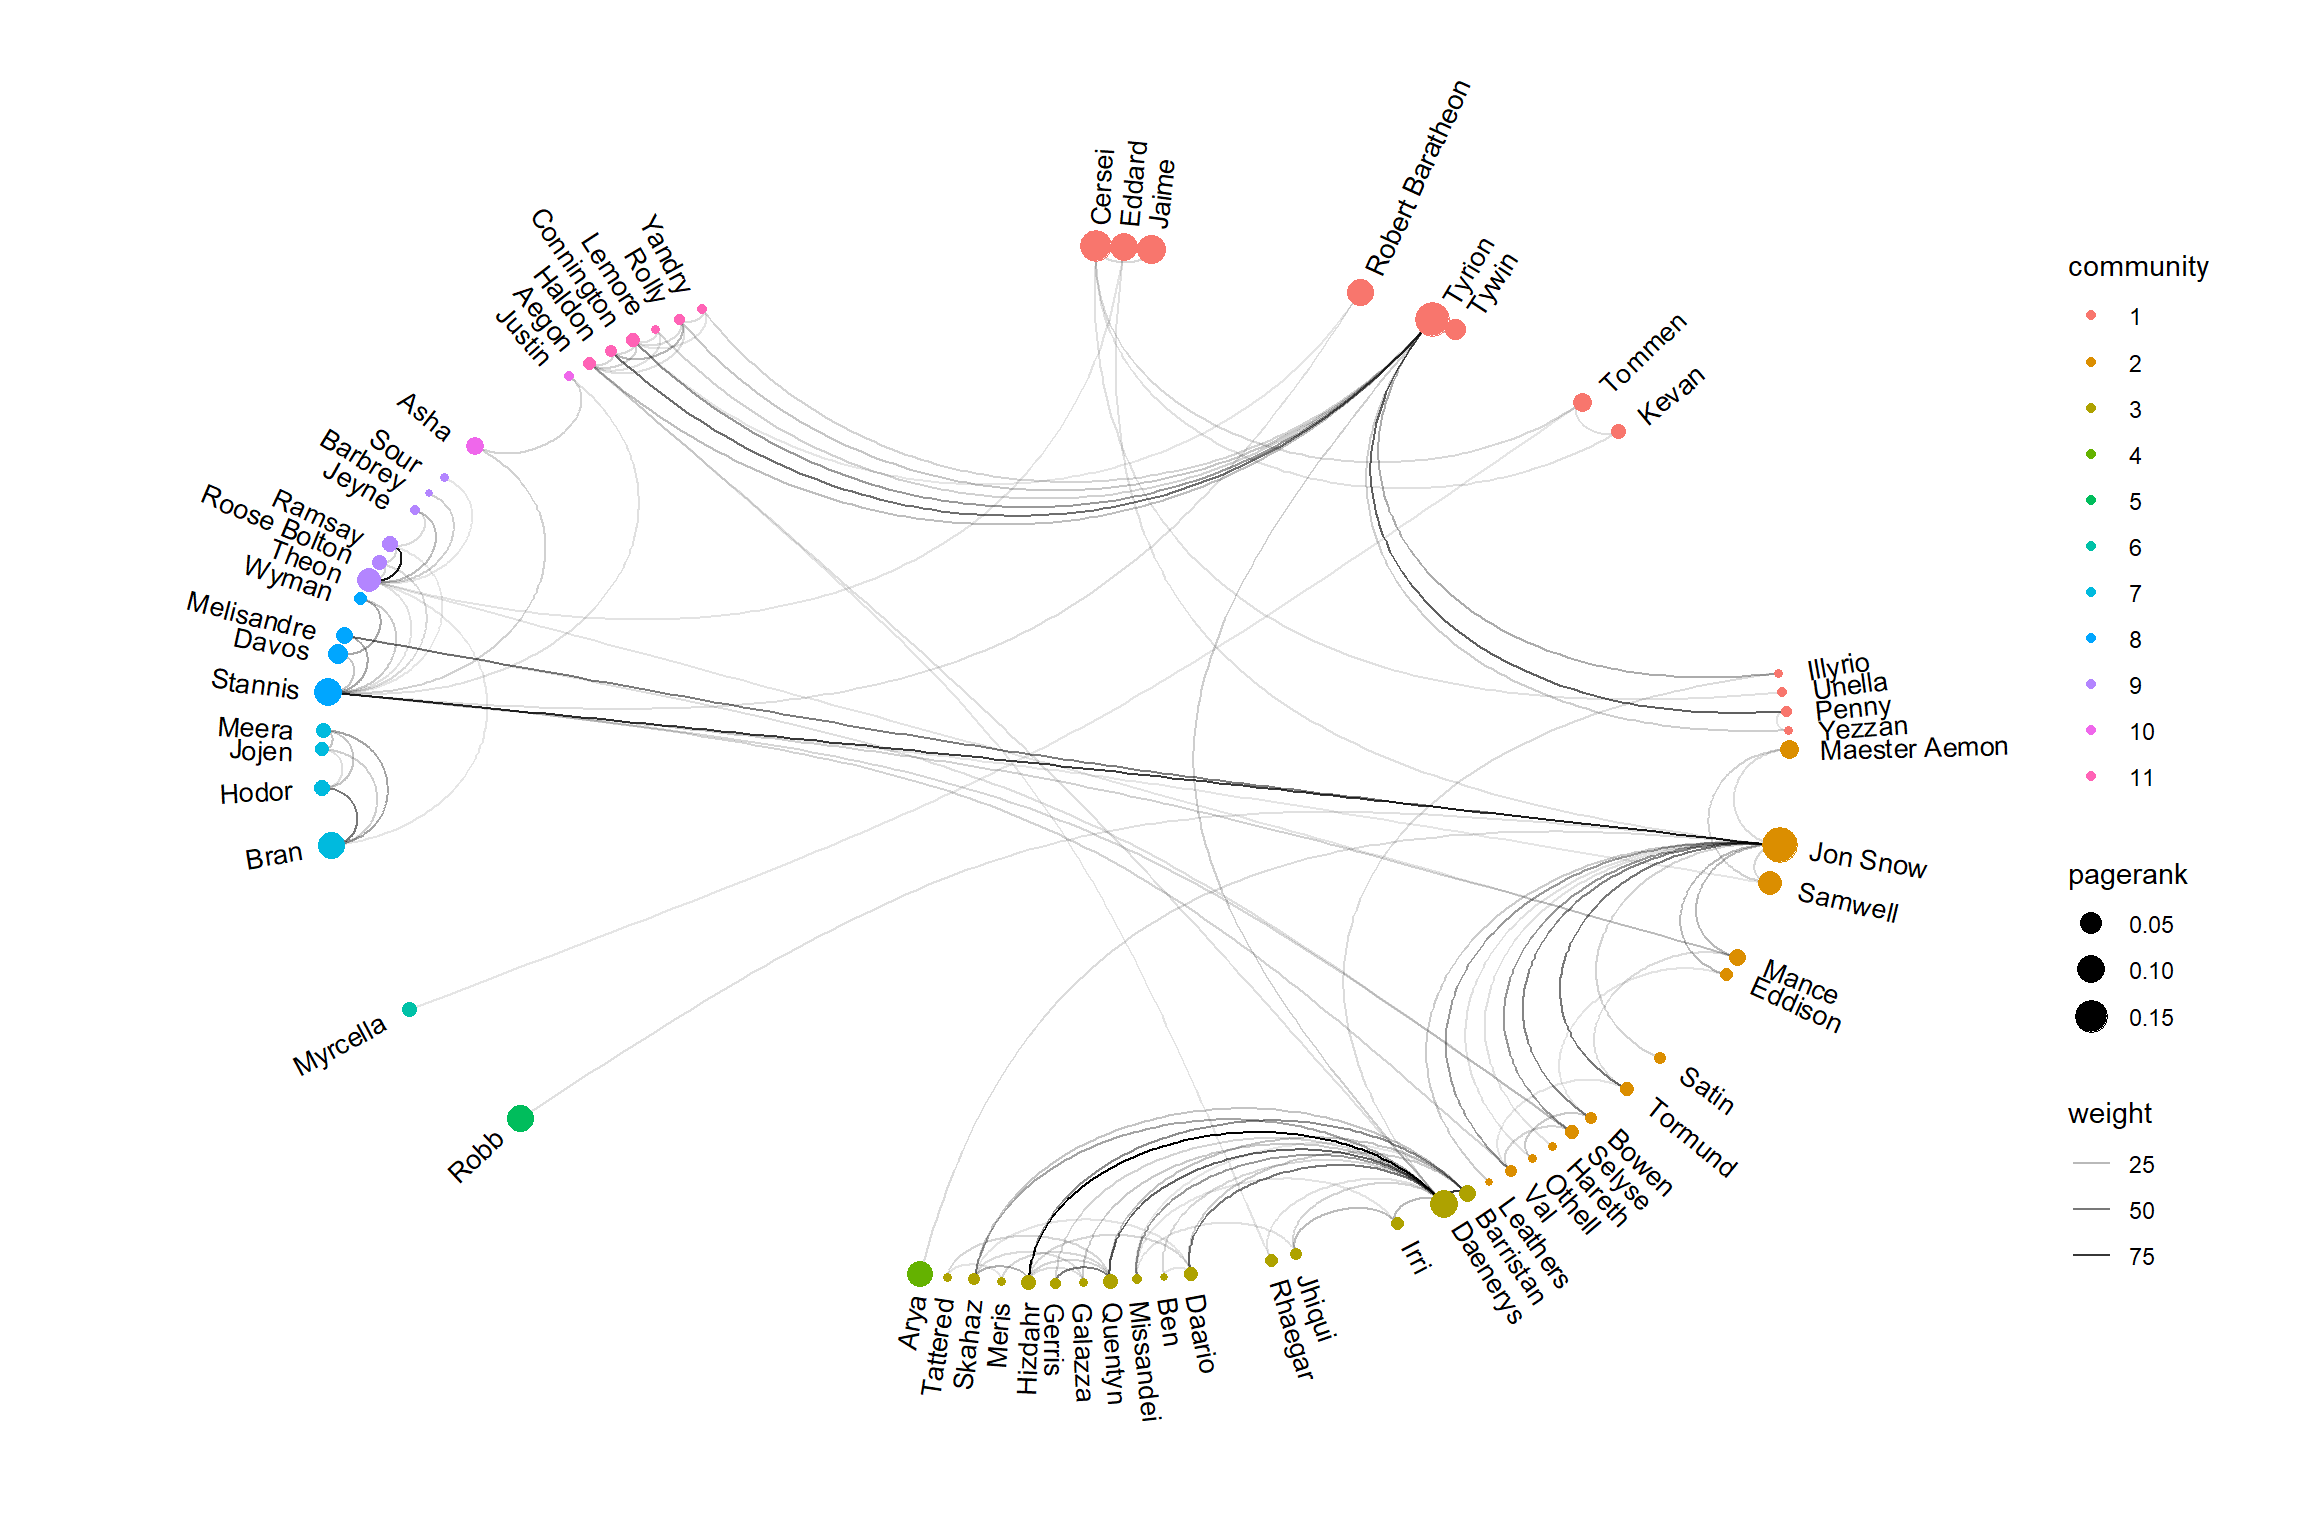 Visualising Networks in ASOIAF